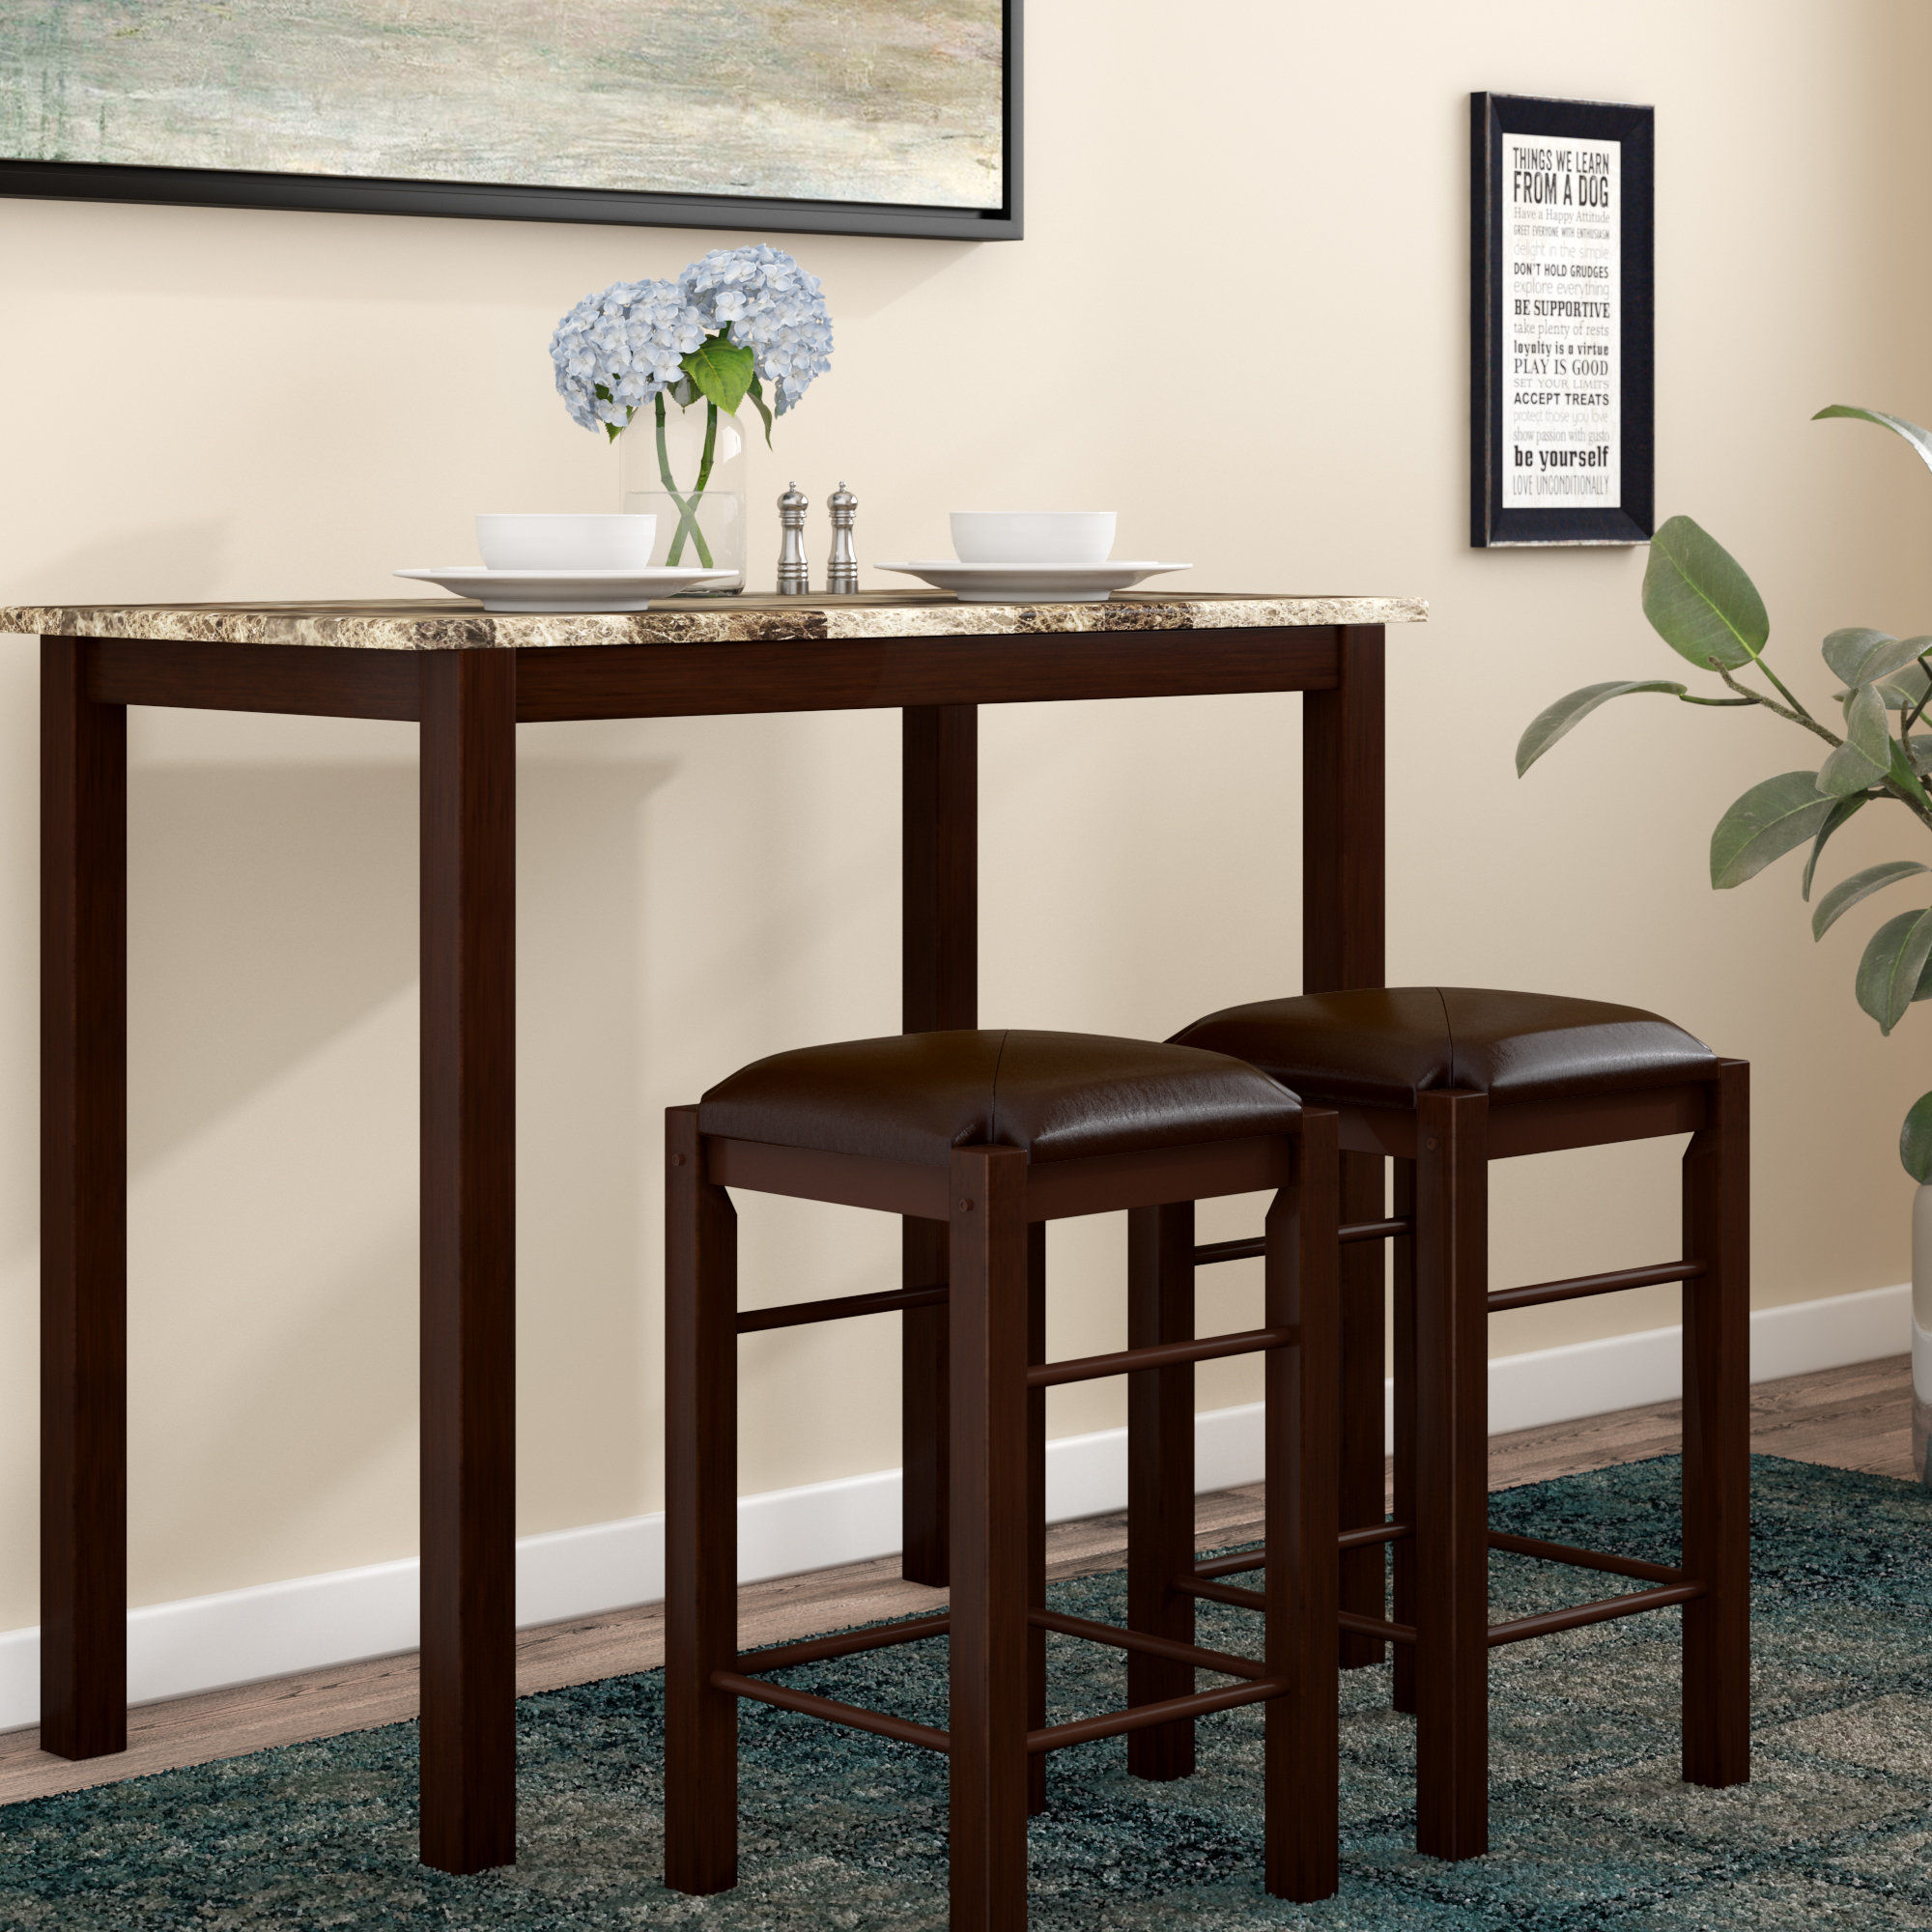 Penelope 3 Piece Counter Height Wood Dining Set Regarding Most Up To Date Lonon 3 Piece Dining Sets (View 5 of 20)